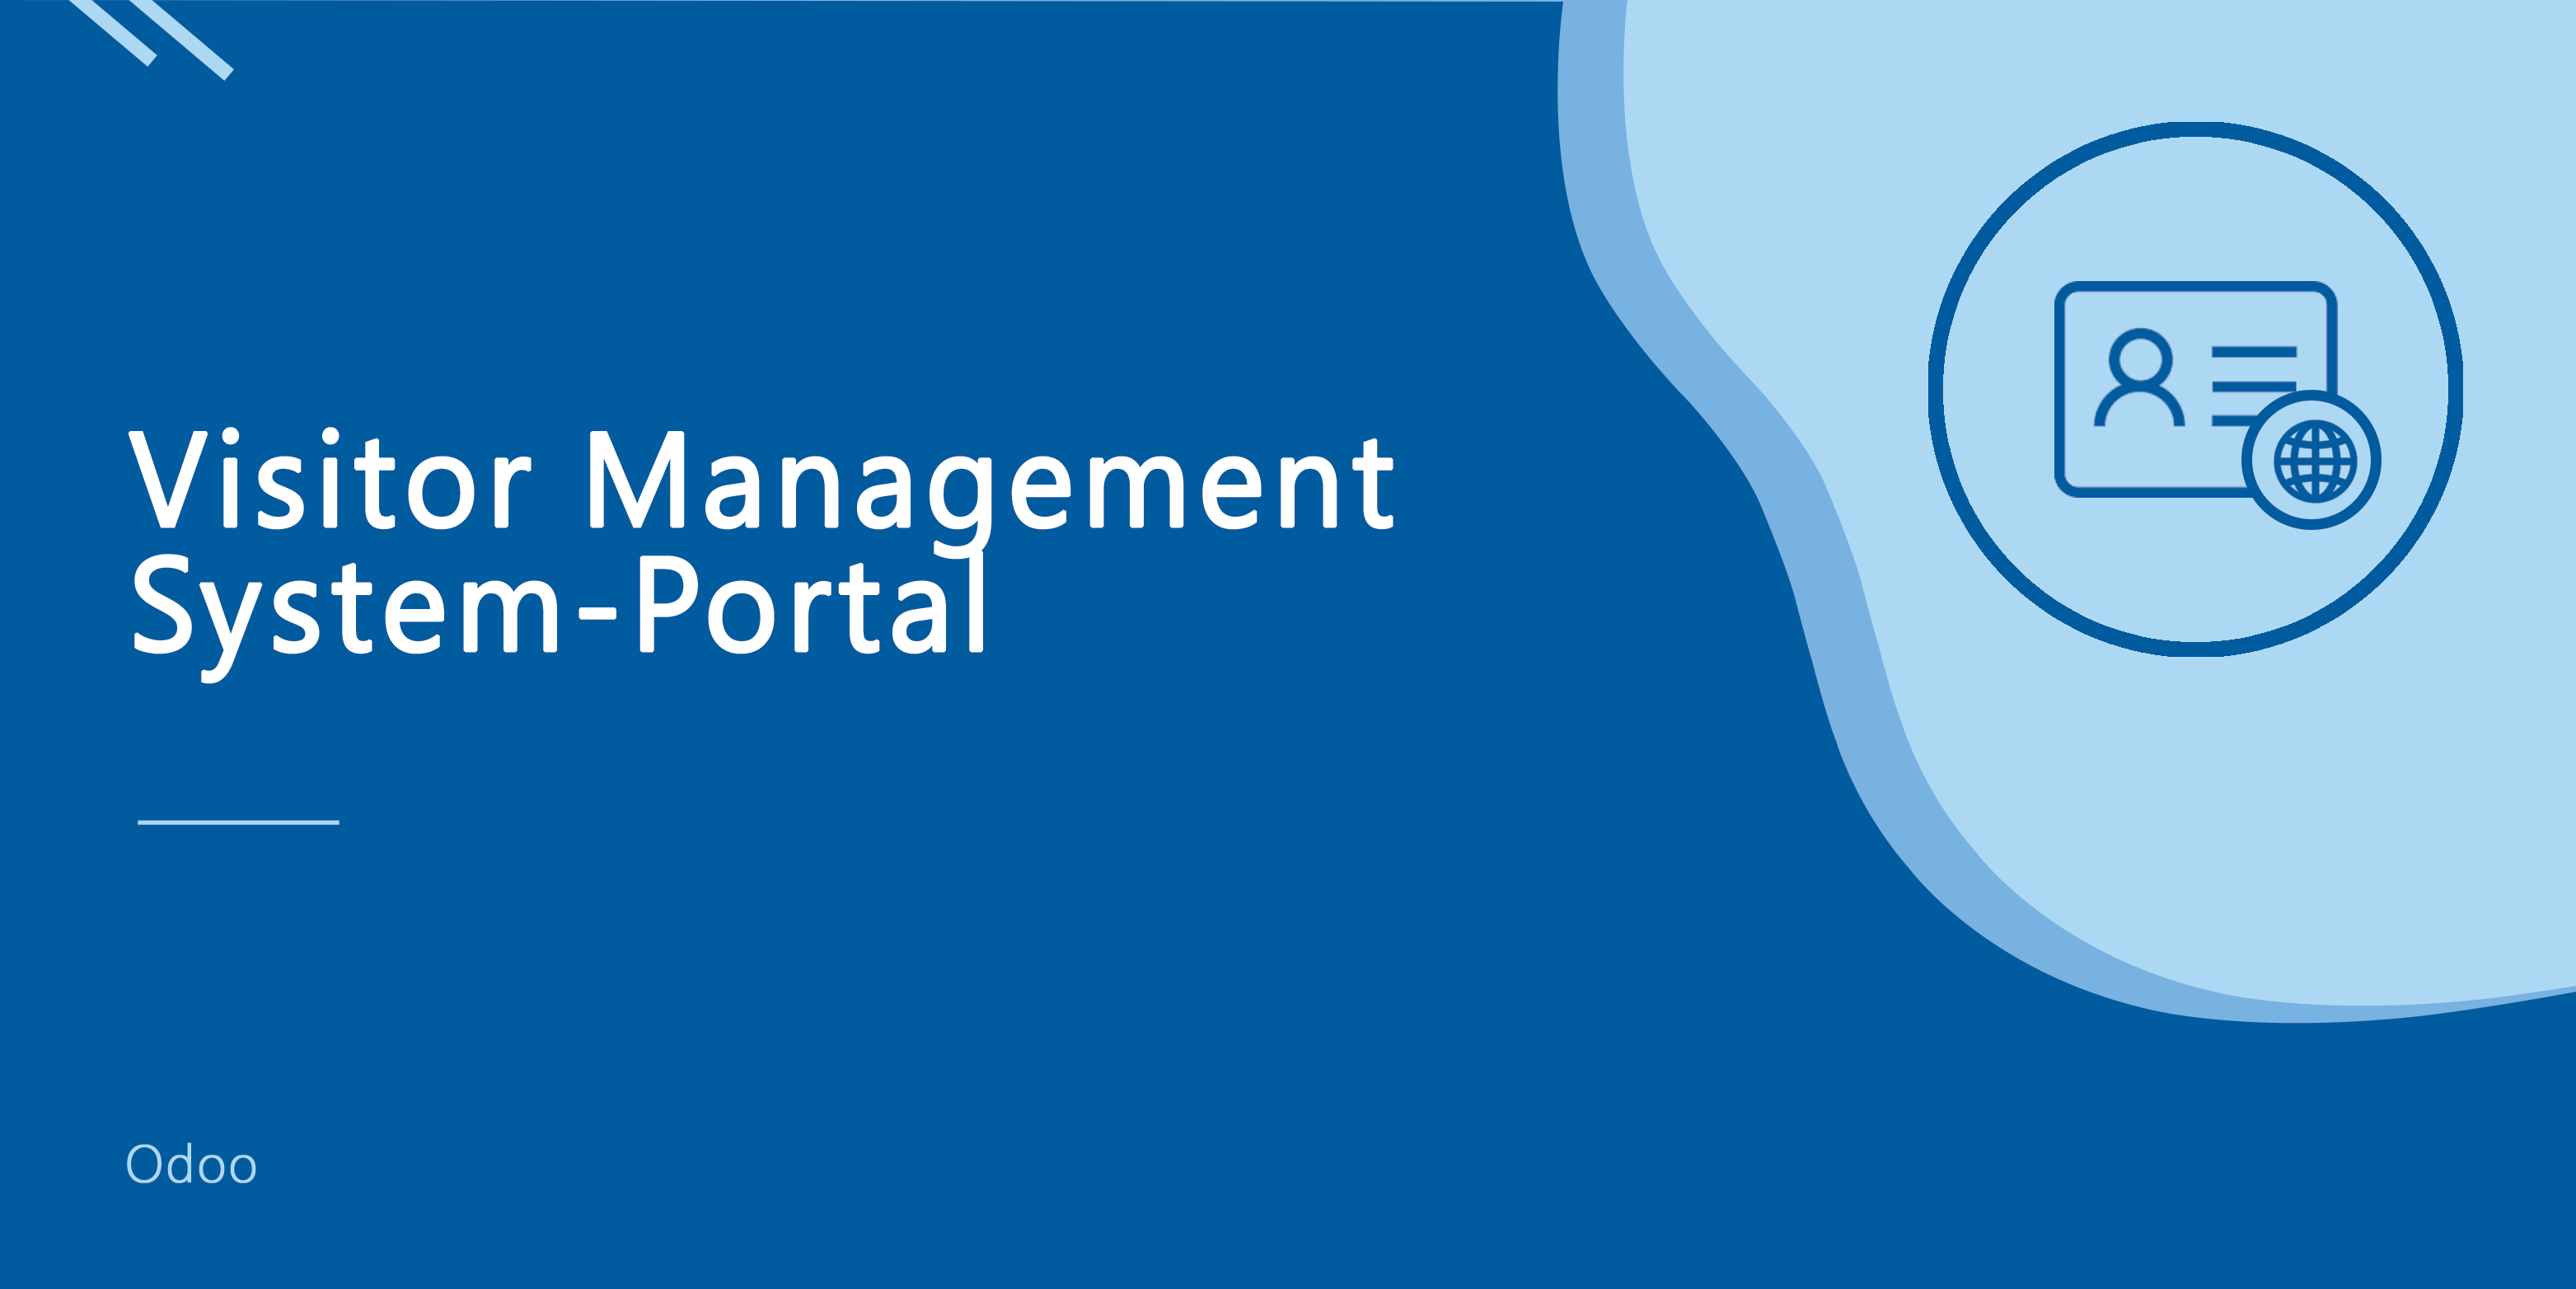 Visitor Management System-Portal